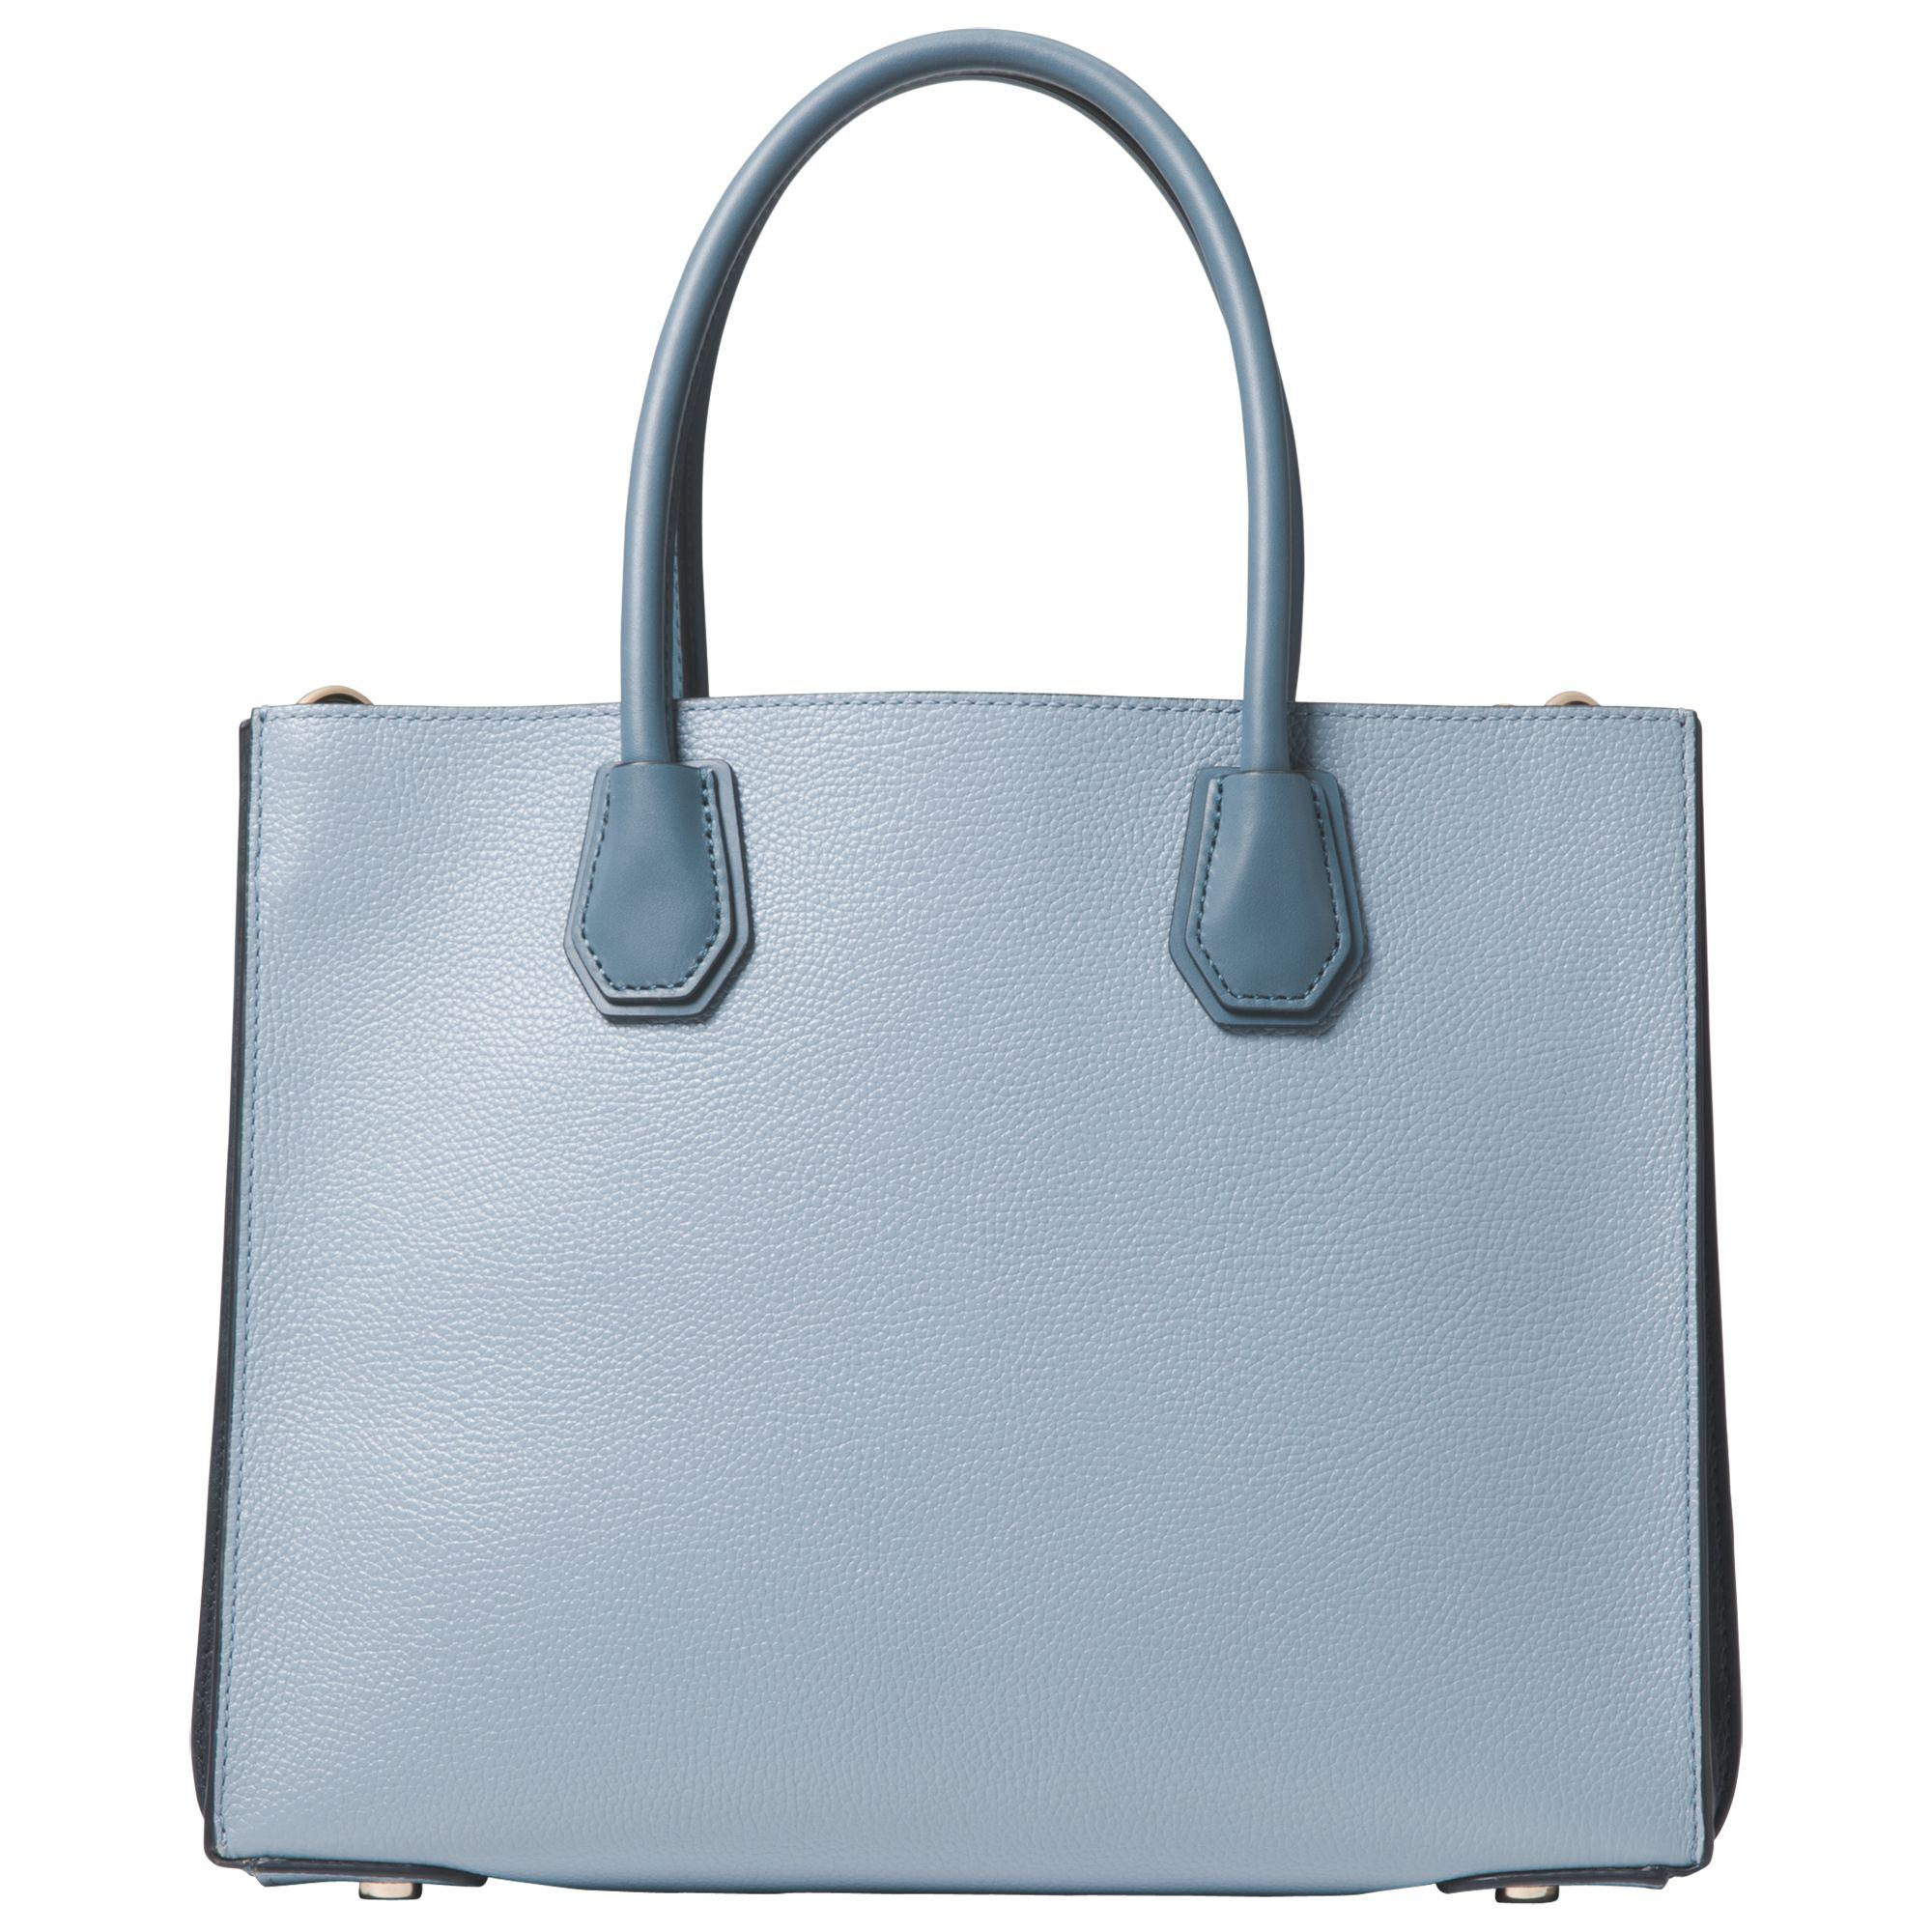 Michael Kors Mercer Large Pebbled Leather Accordion Tote in Blue - Lyst cdc53ce2b20b6